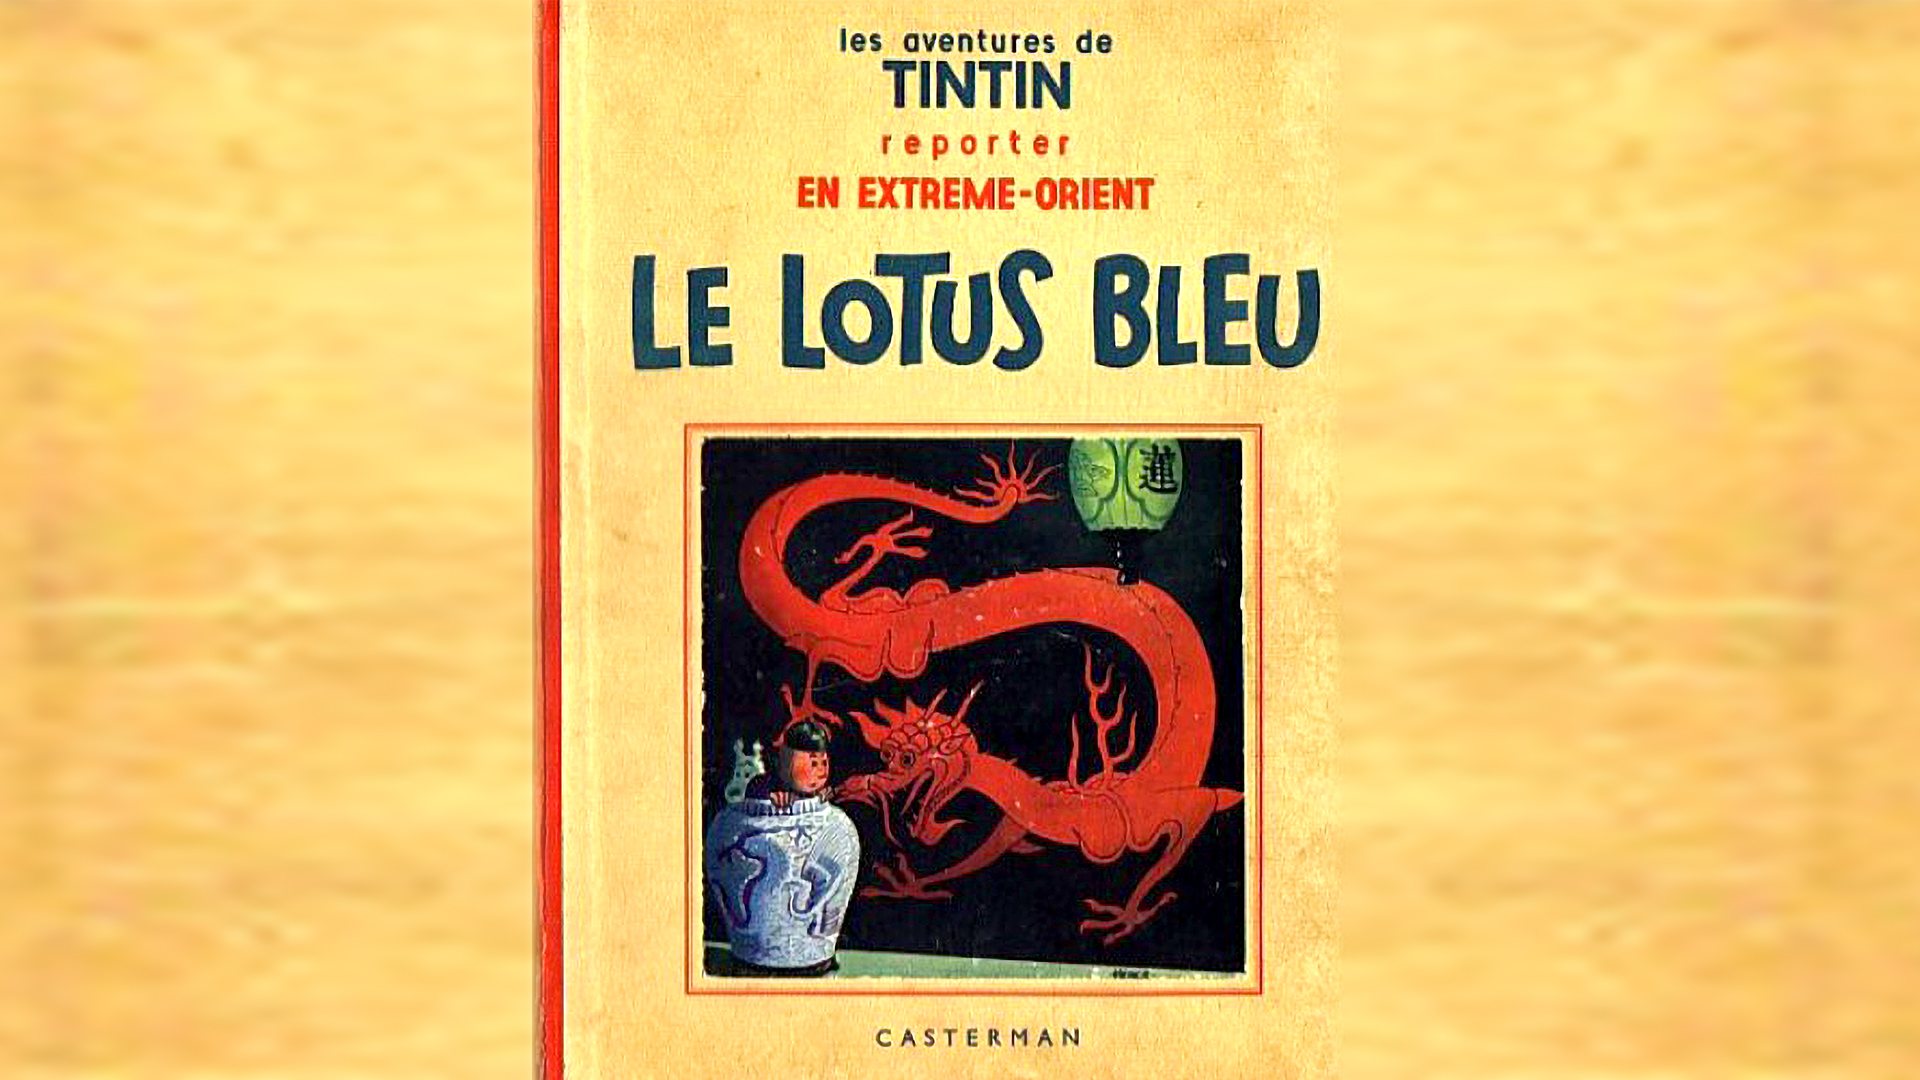 Rare Tintin Artwork Sells For $3.2 Million